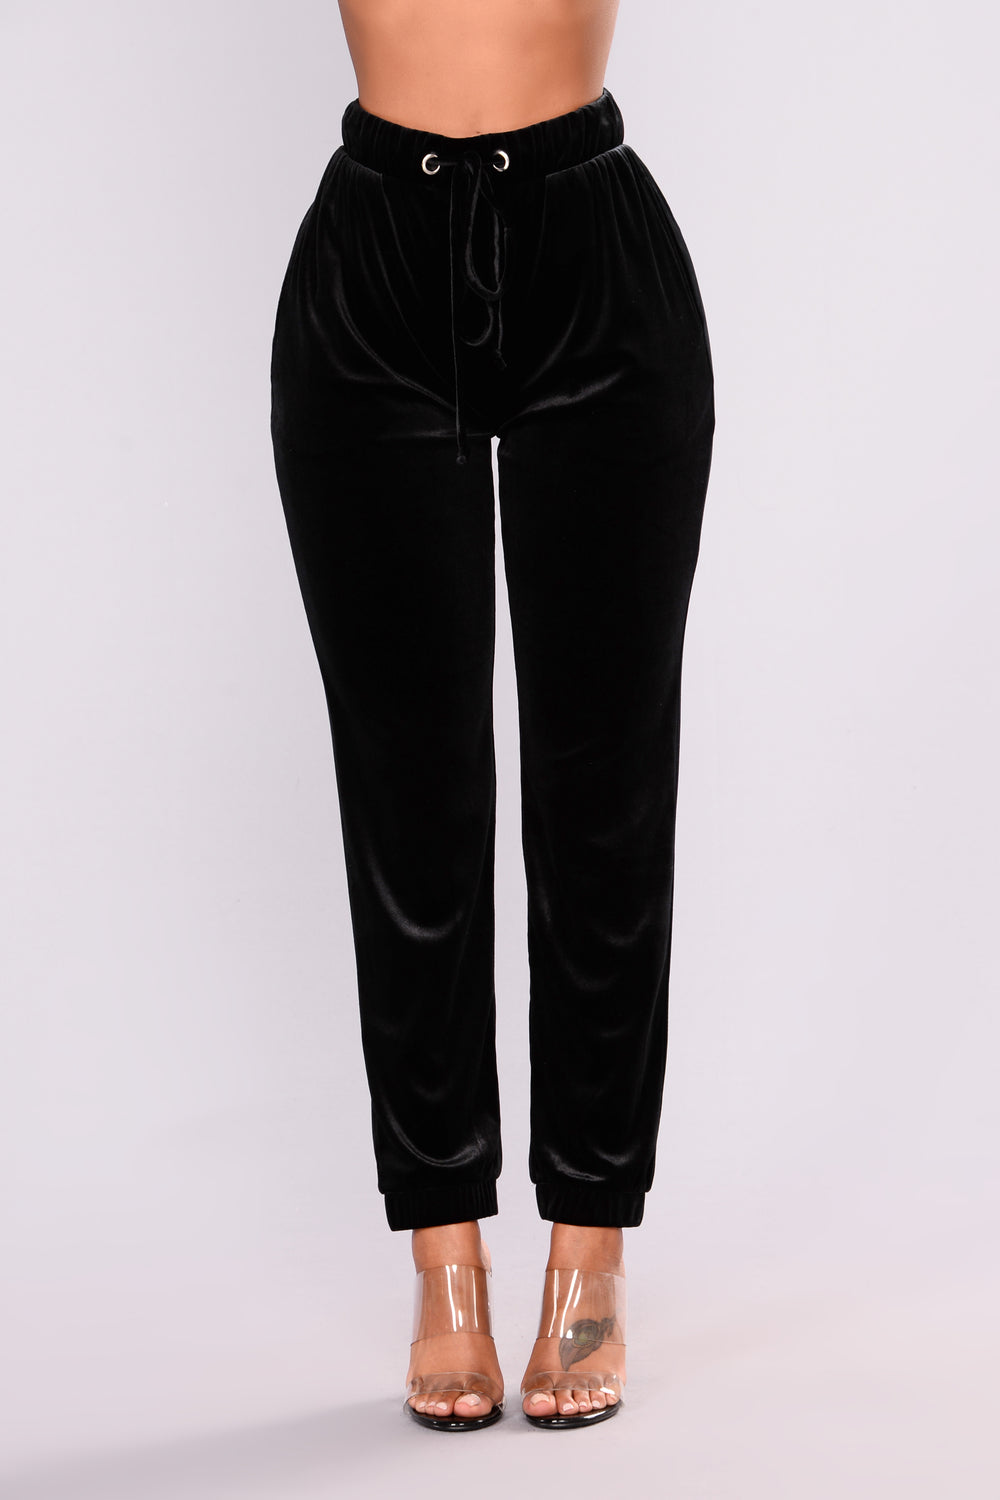 Cathy Velvet Jogger Pants - Black